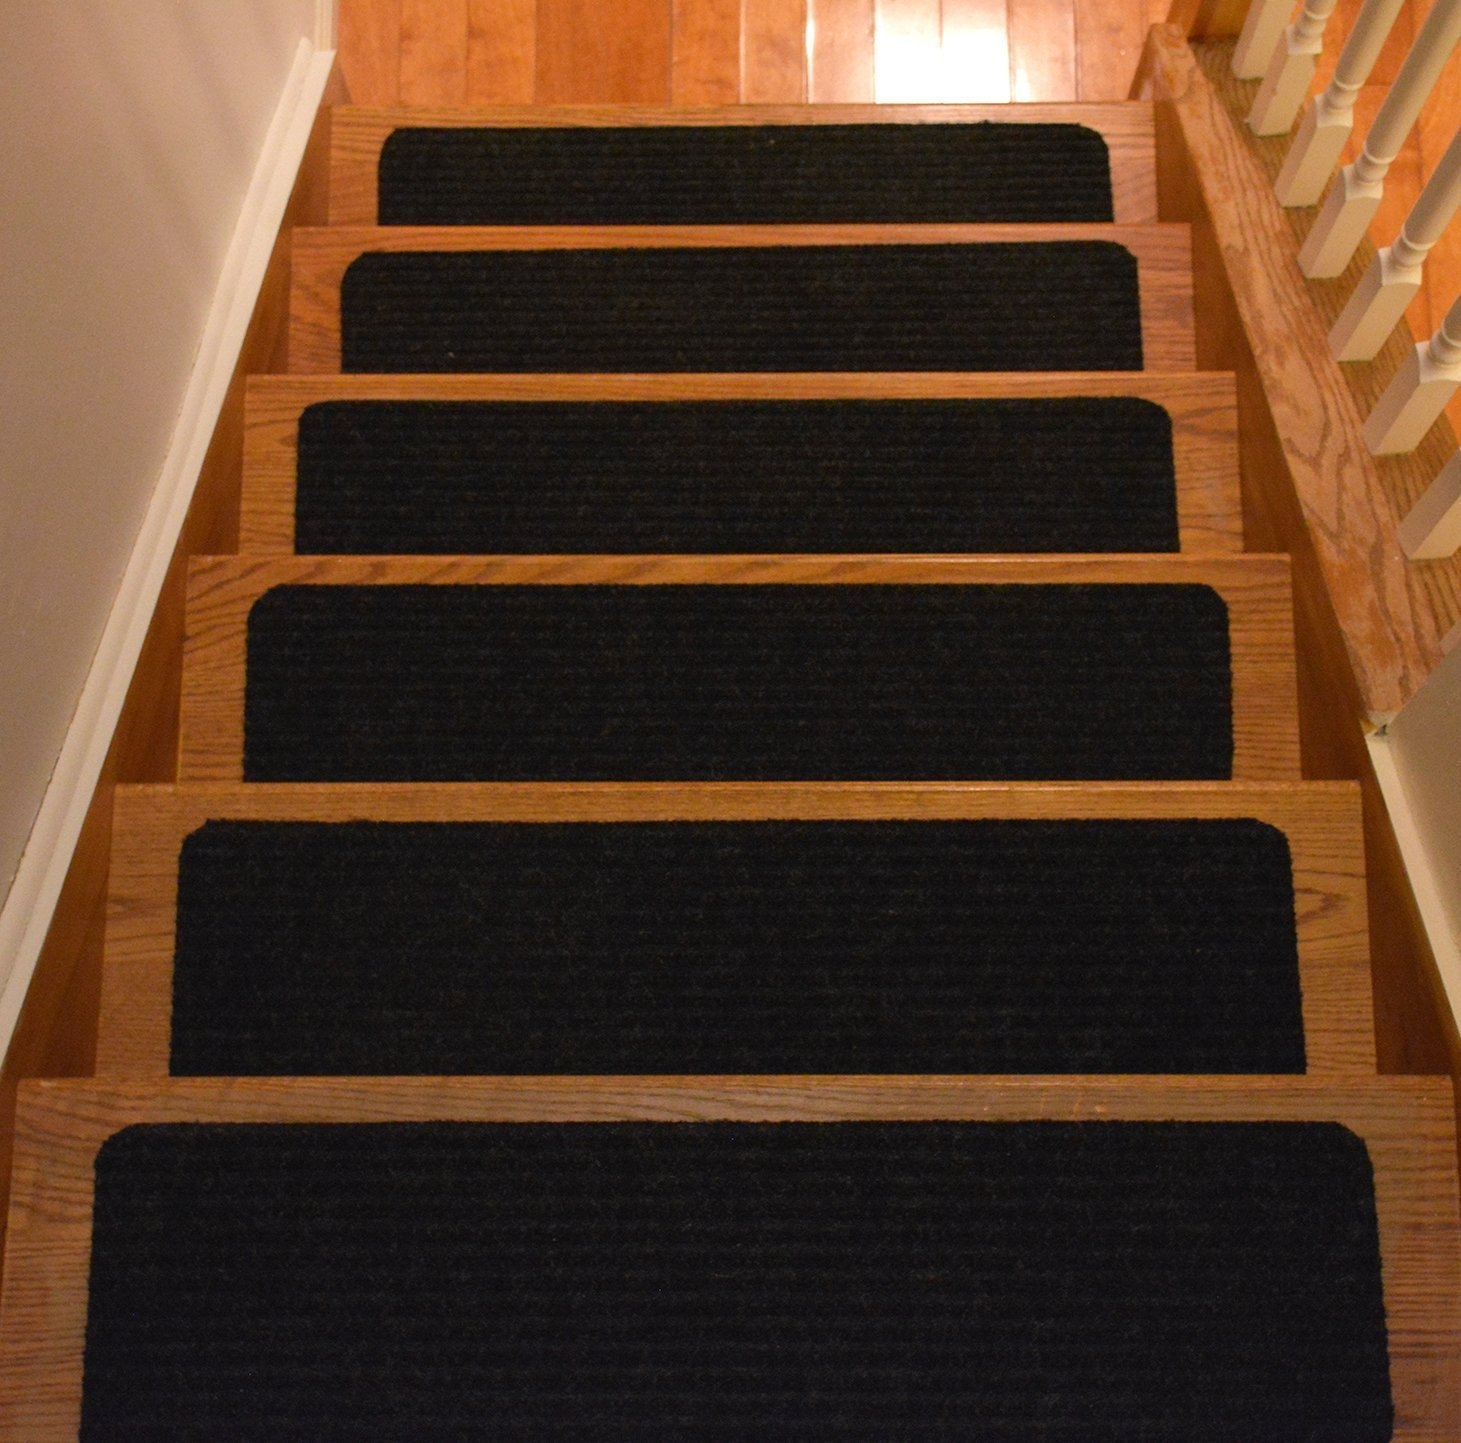 Flooring Stair Treads Carpet Stair Tread Rug Carpet Tread For Within Stair Tread Rug Gripper (#8 of 20)